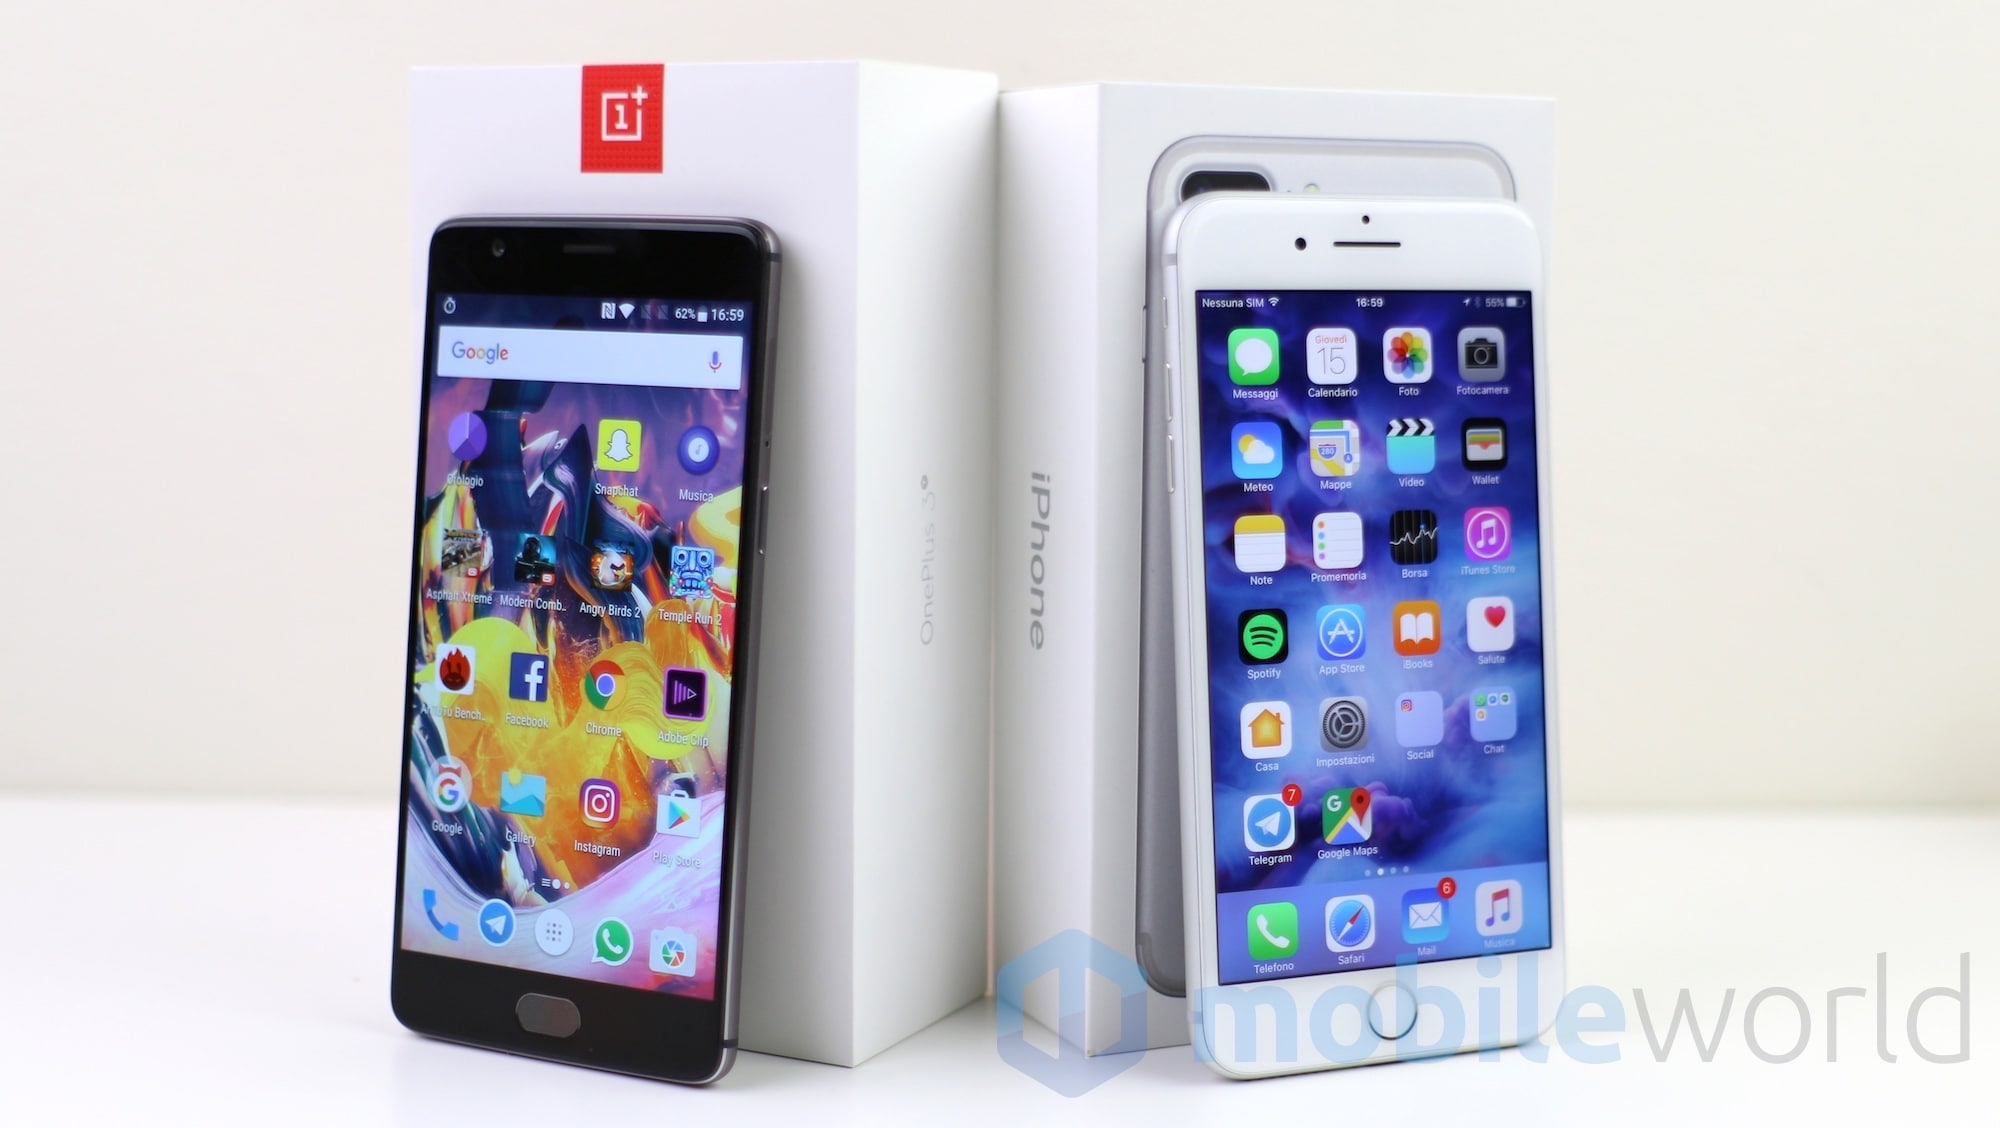 confronto-oneplus-3t-iphone-7-plus-8